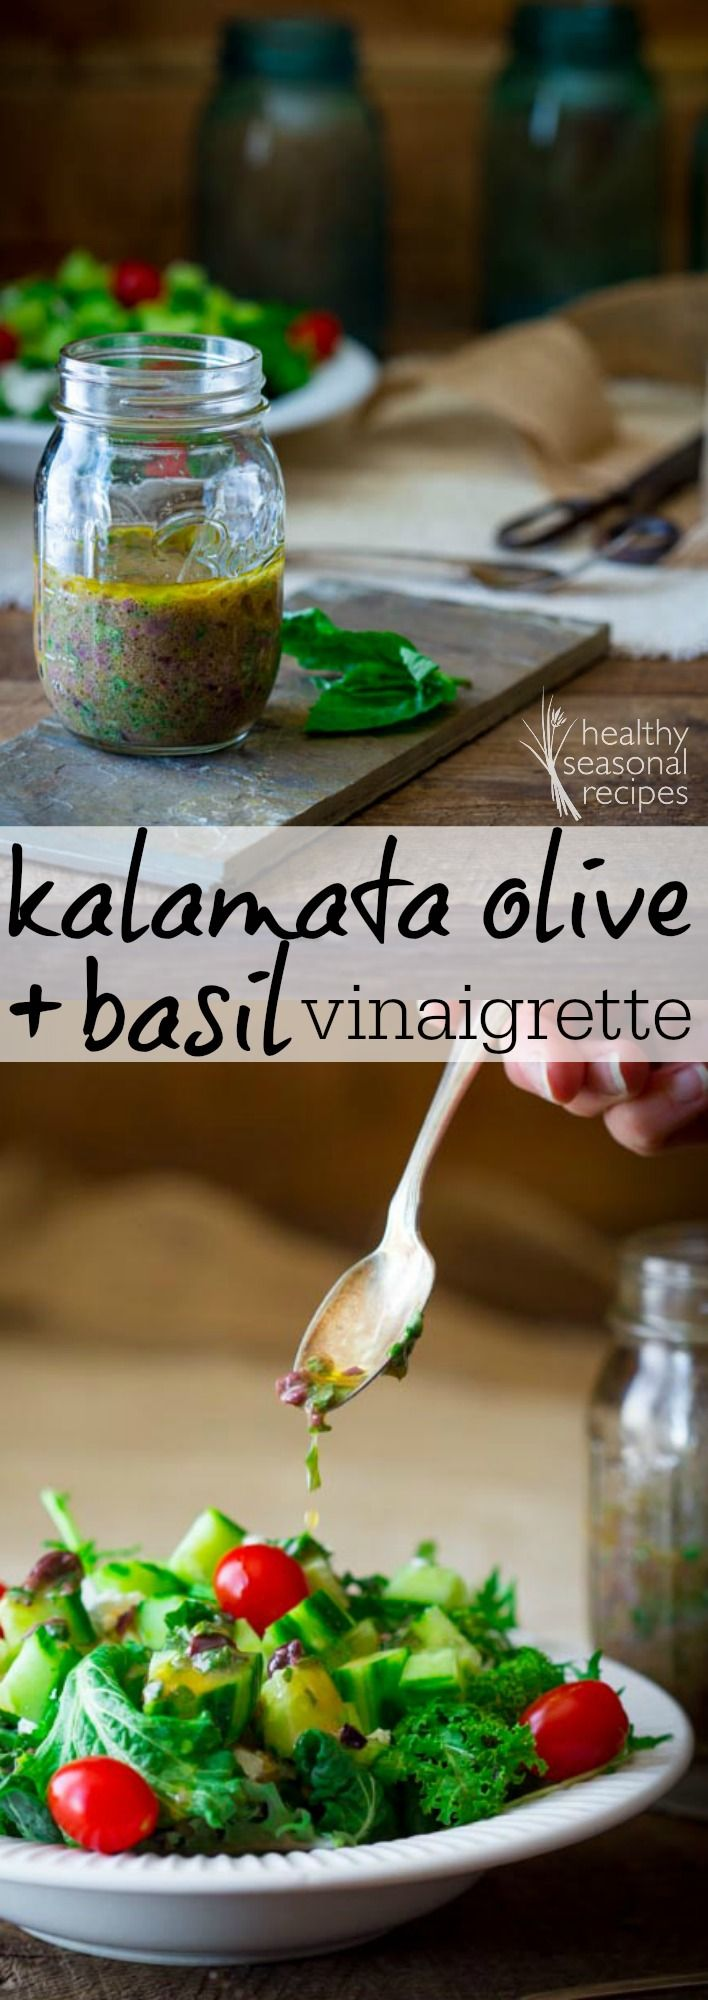 kalamata olive and basil vinaigrette - Healthy Seasonal Recipes